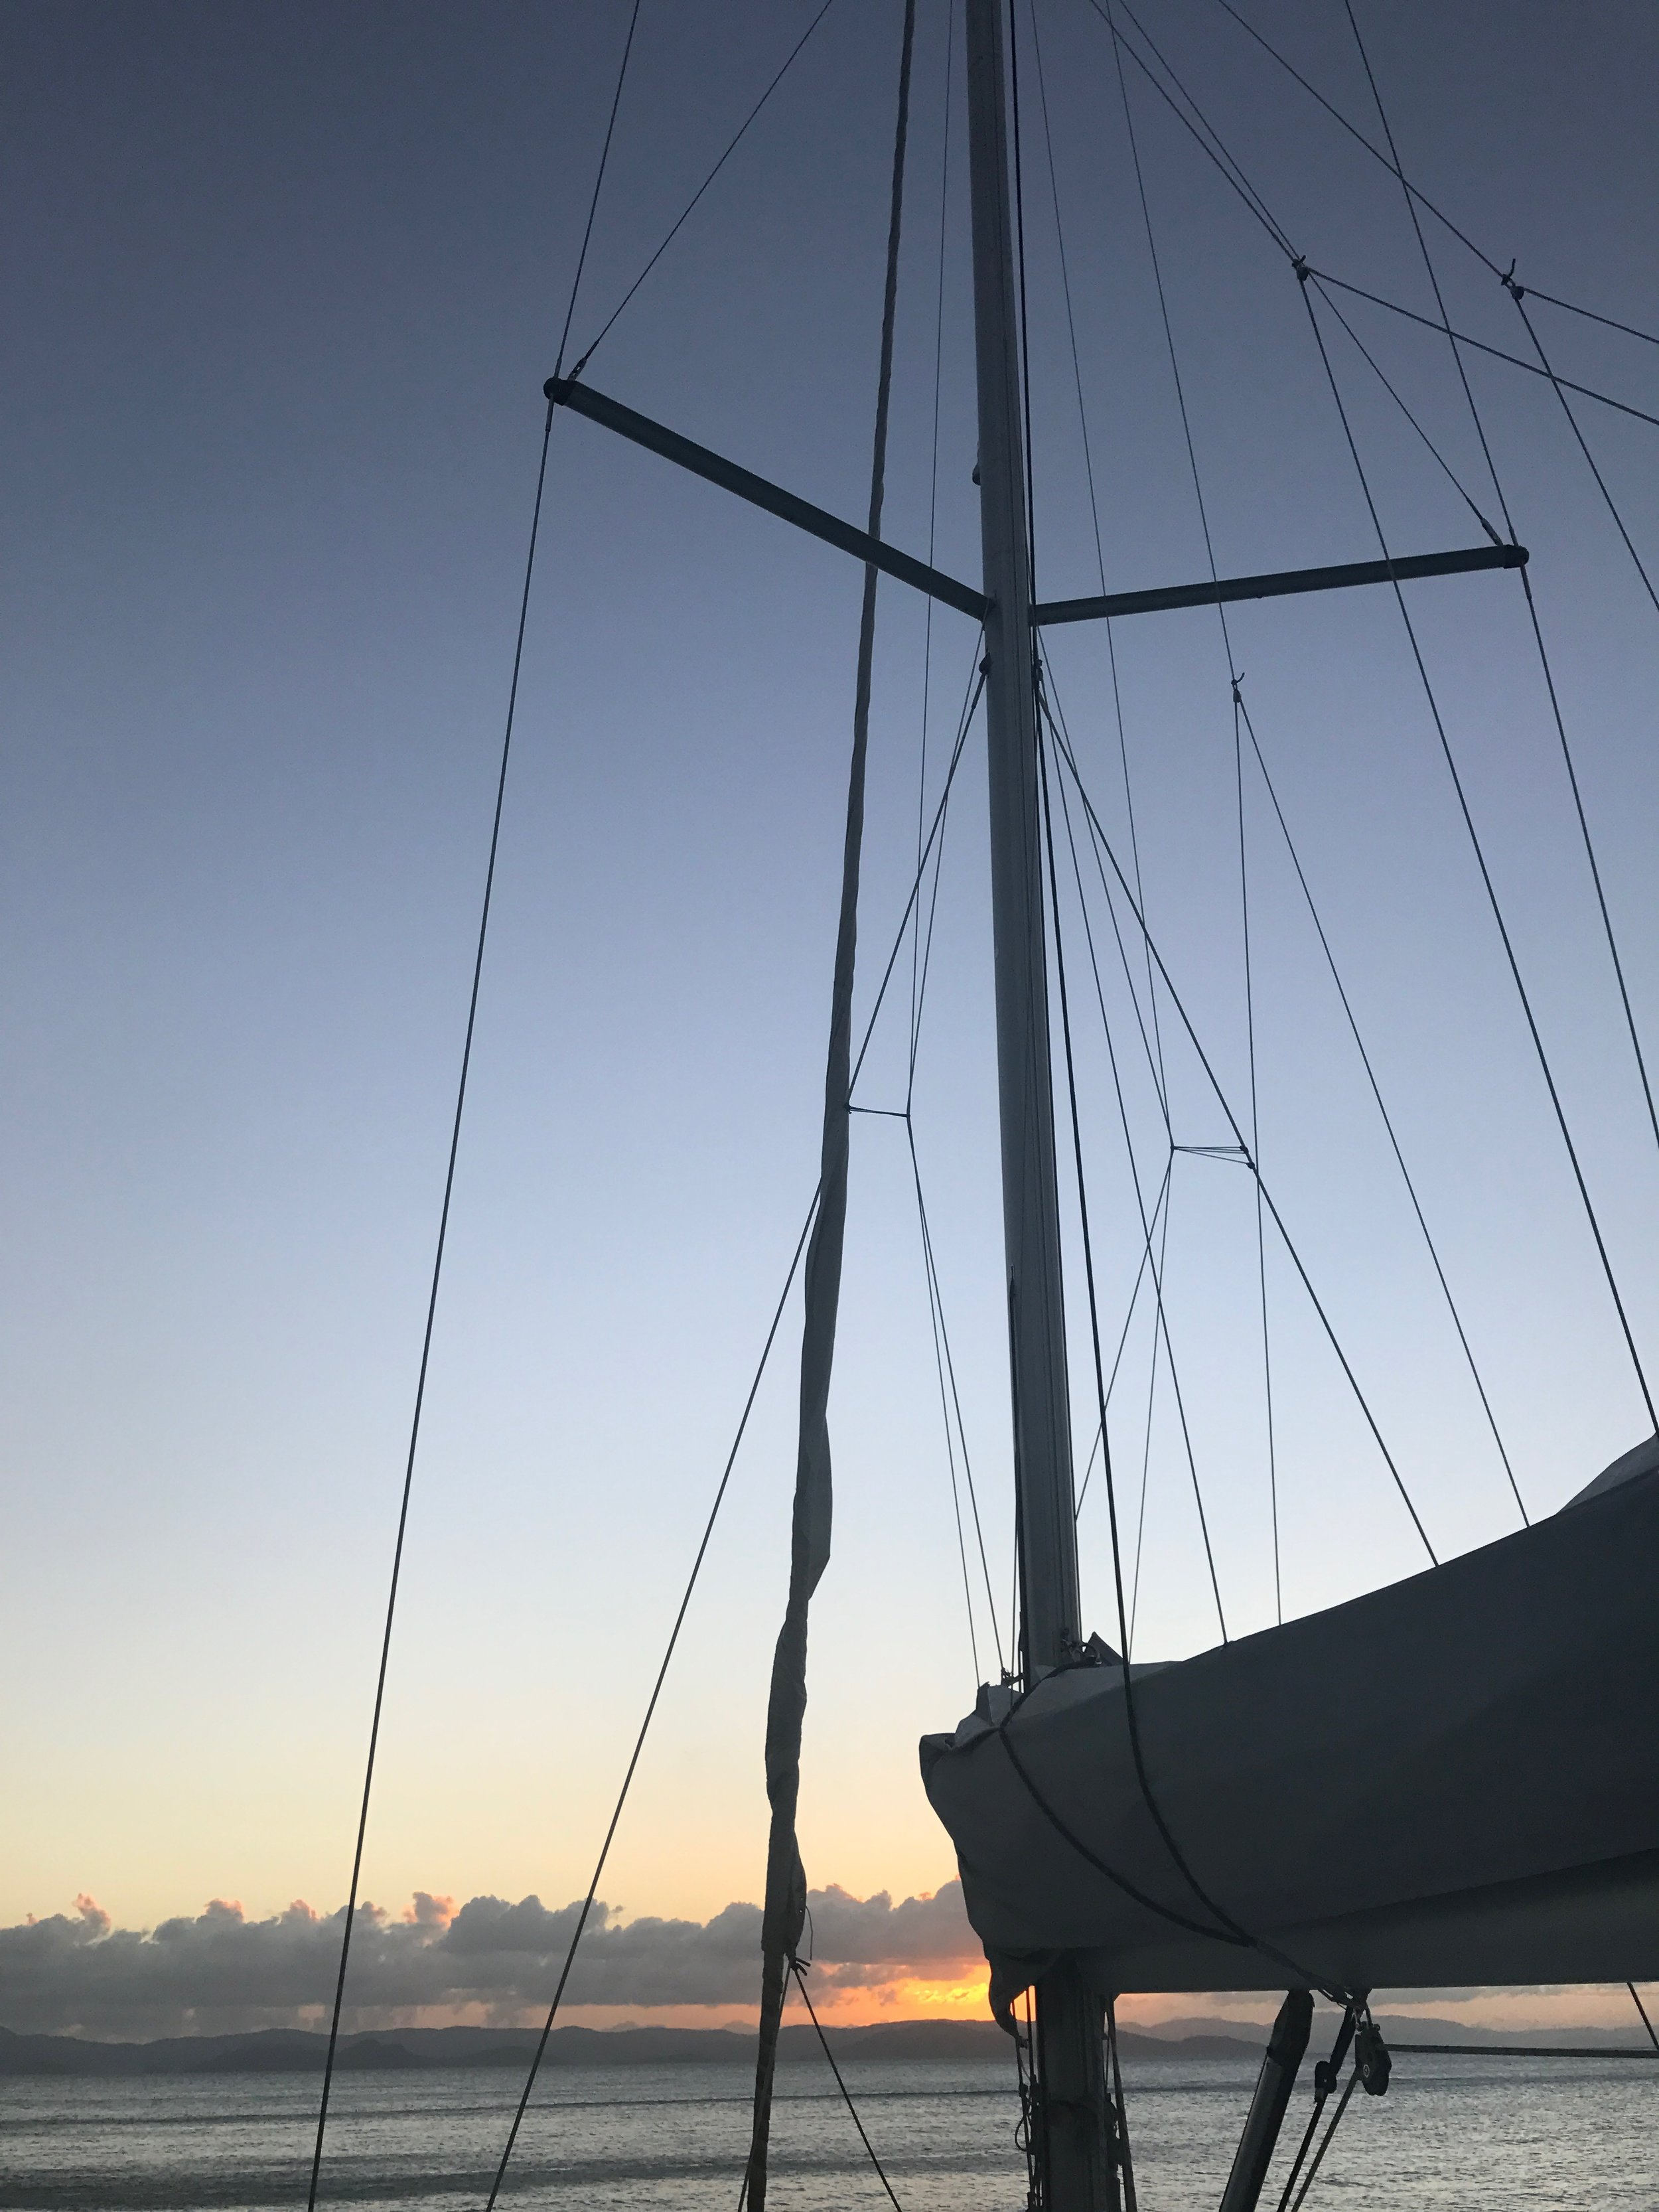 We flew to Hamilton Island and then took a ferry to Airlie Beach, where we boarded 'The Blizzard' for a 2-day sail through the Whitsundays (Jan 29).